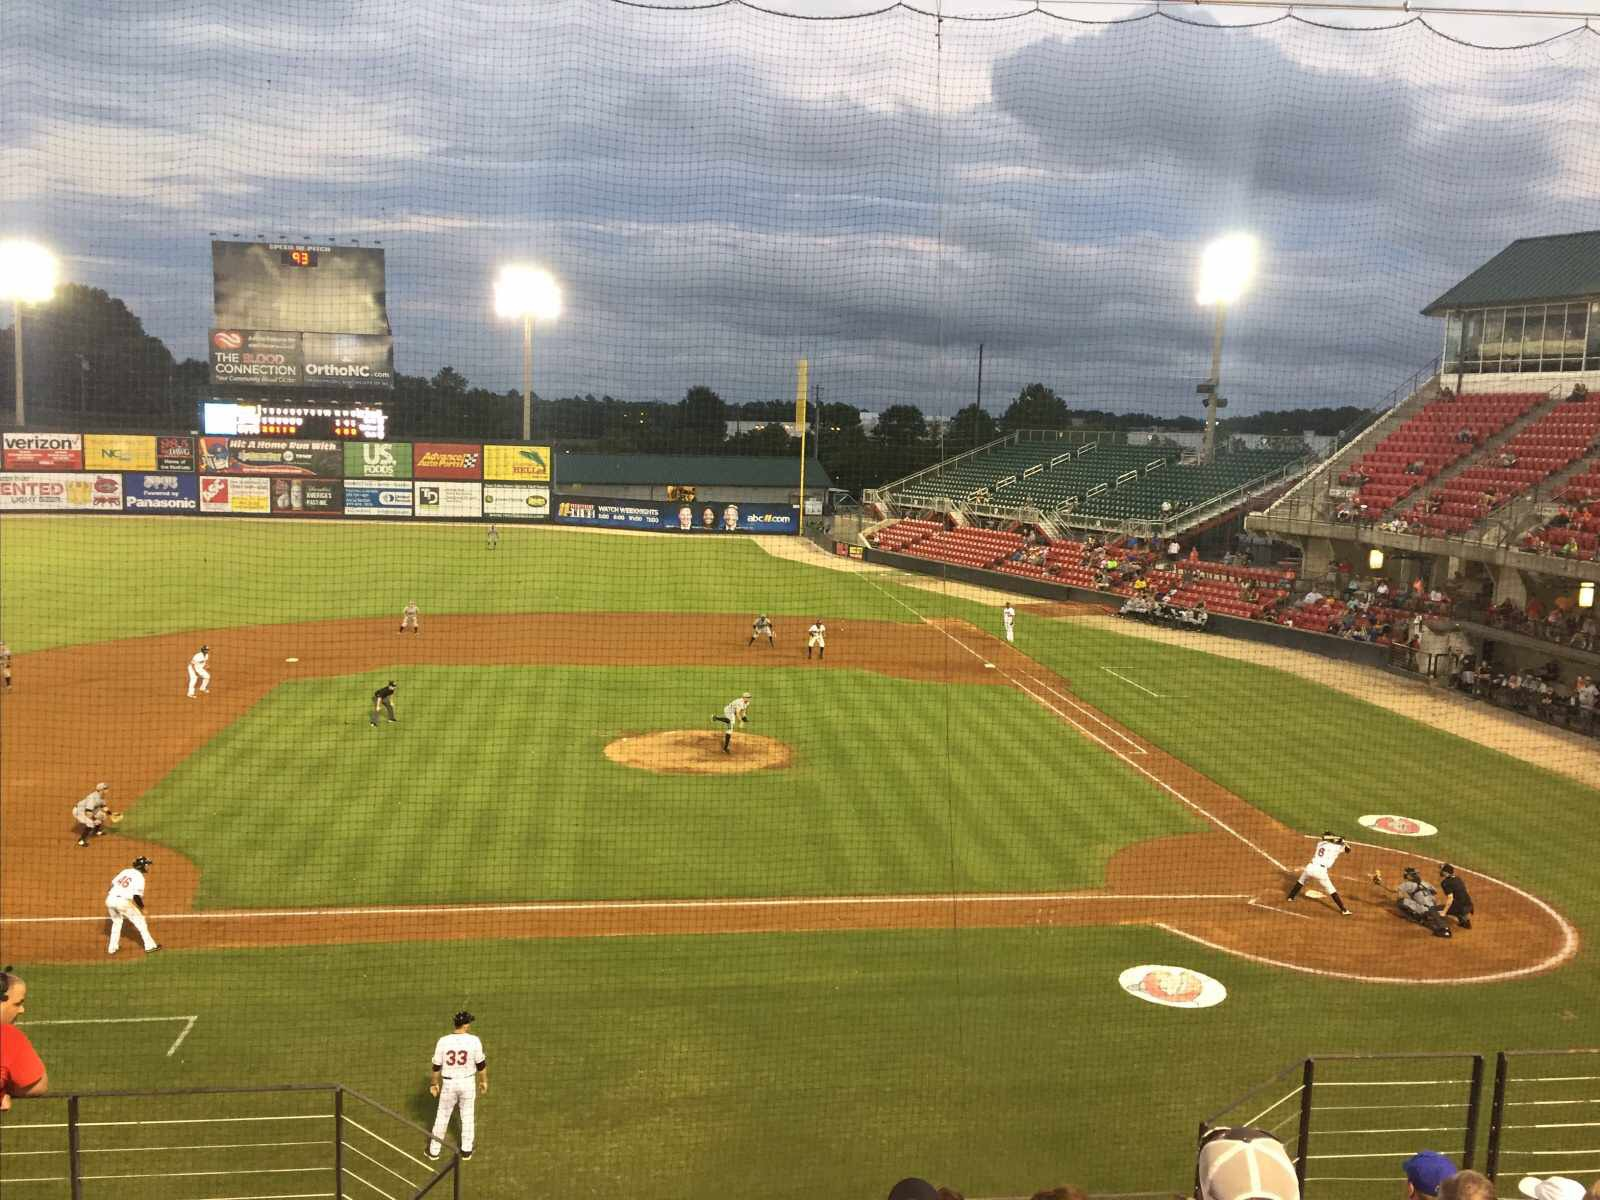 Mudcats Baseball Game at Five County Stadium